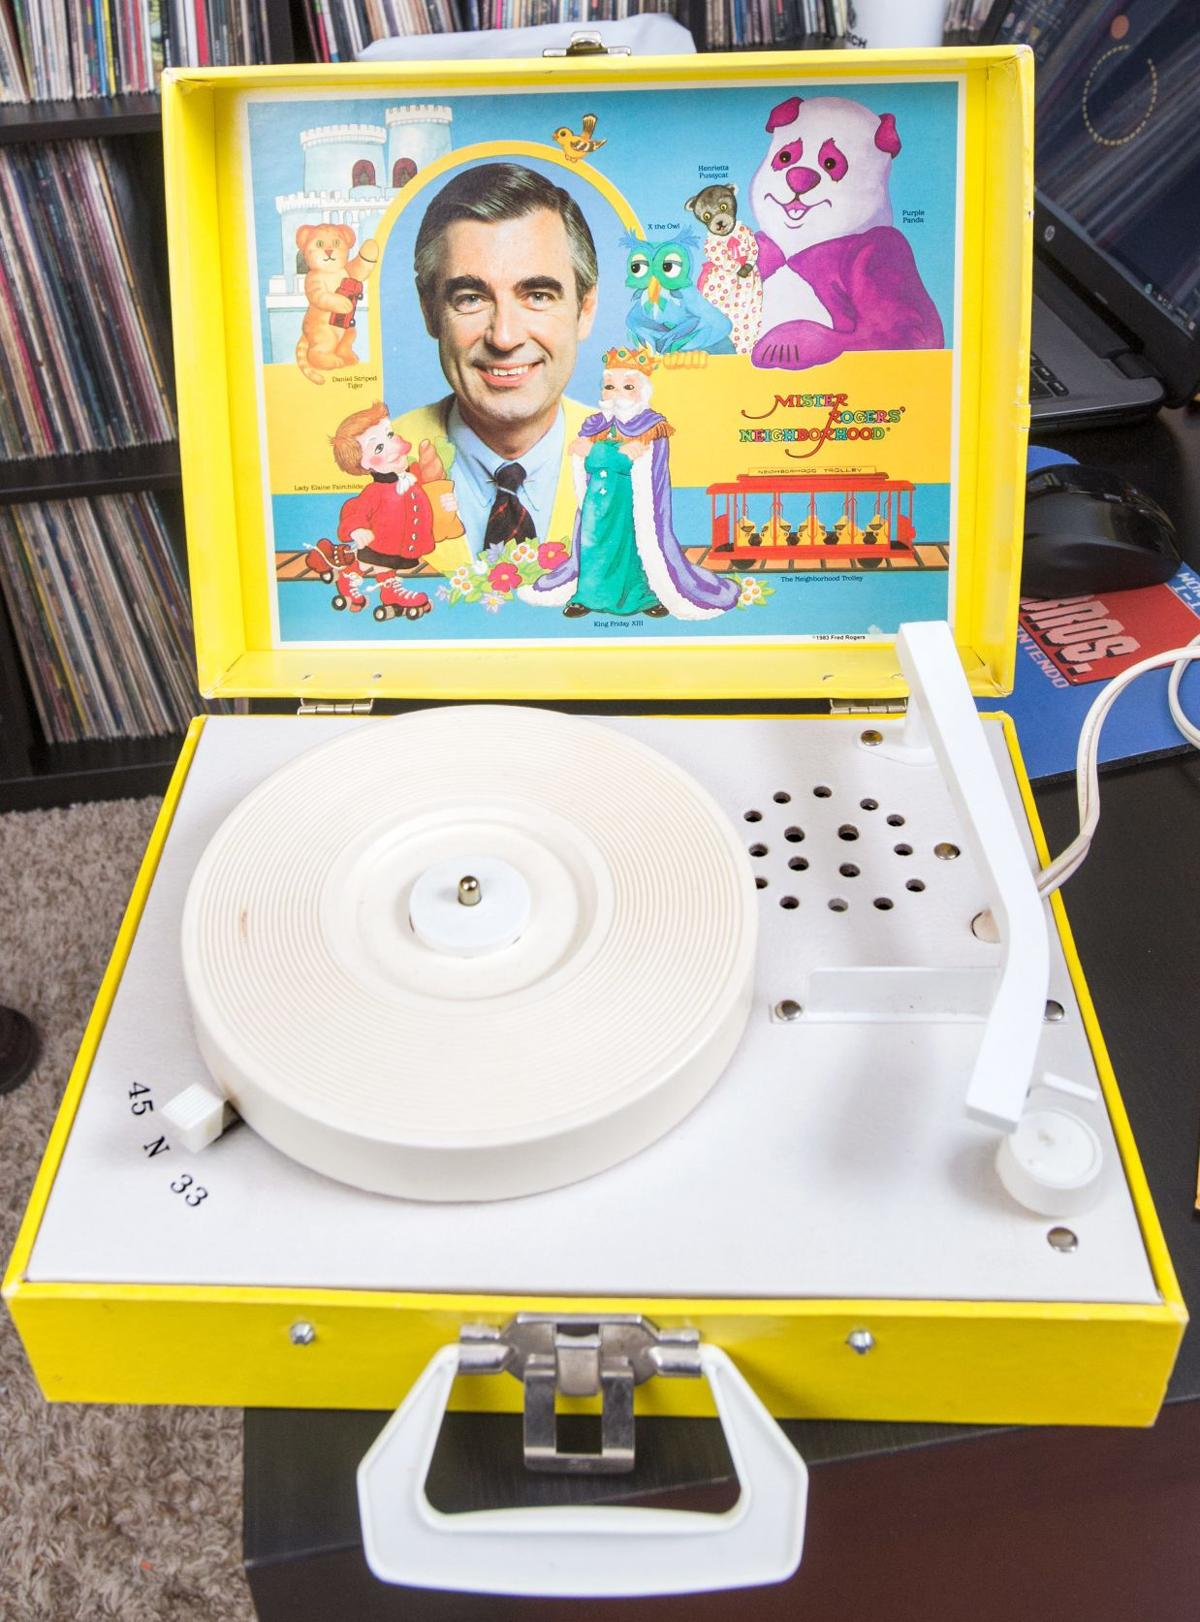 It's such a good feeling: Mahomet man chronicling all things Mister Rogers (w/ video)